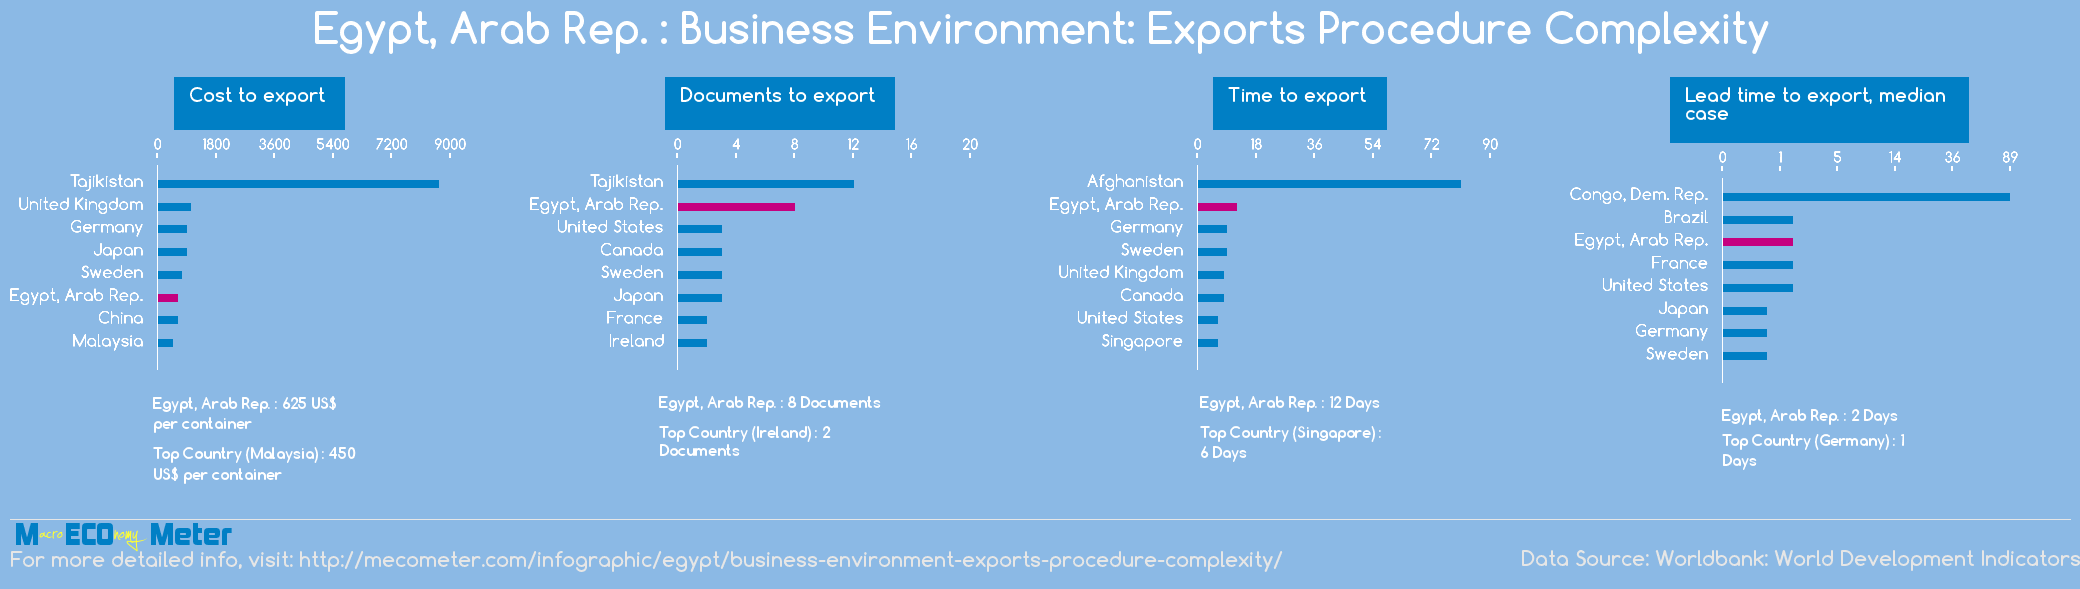 Egypt, Arab Rep. : Business Environment: Exports Procedure Complexity